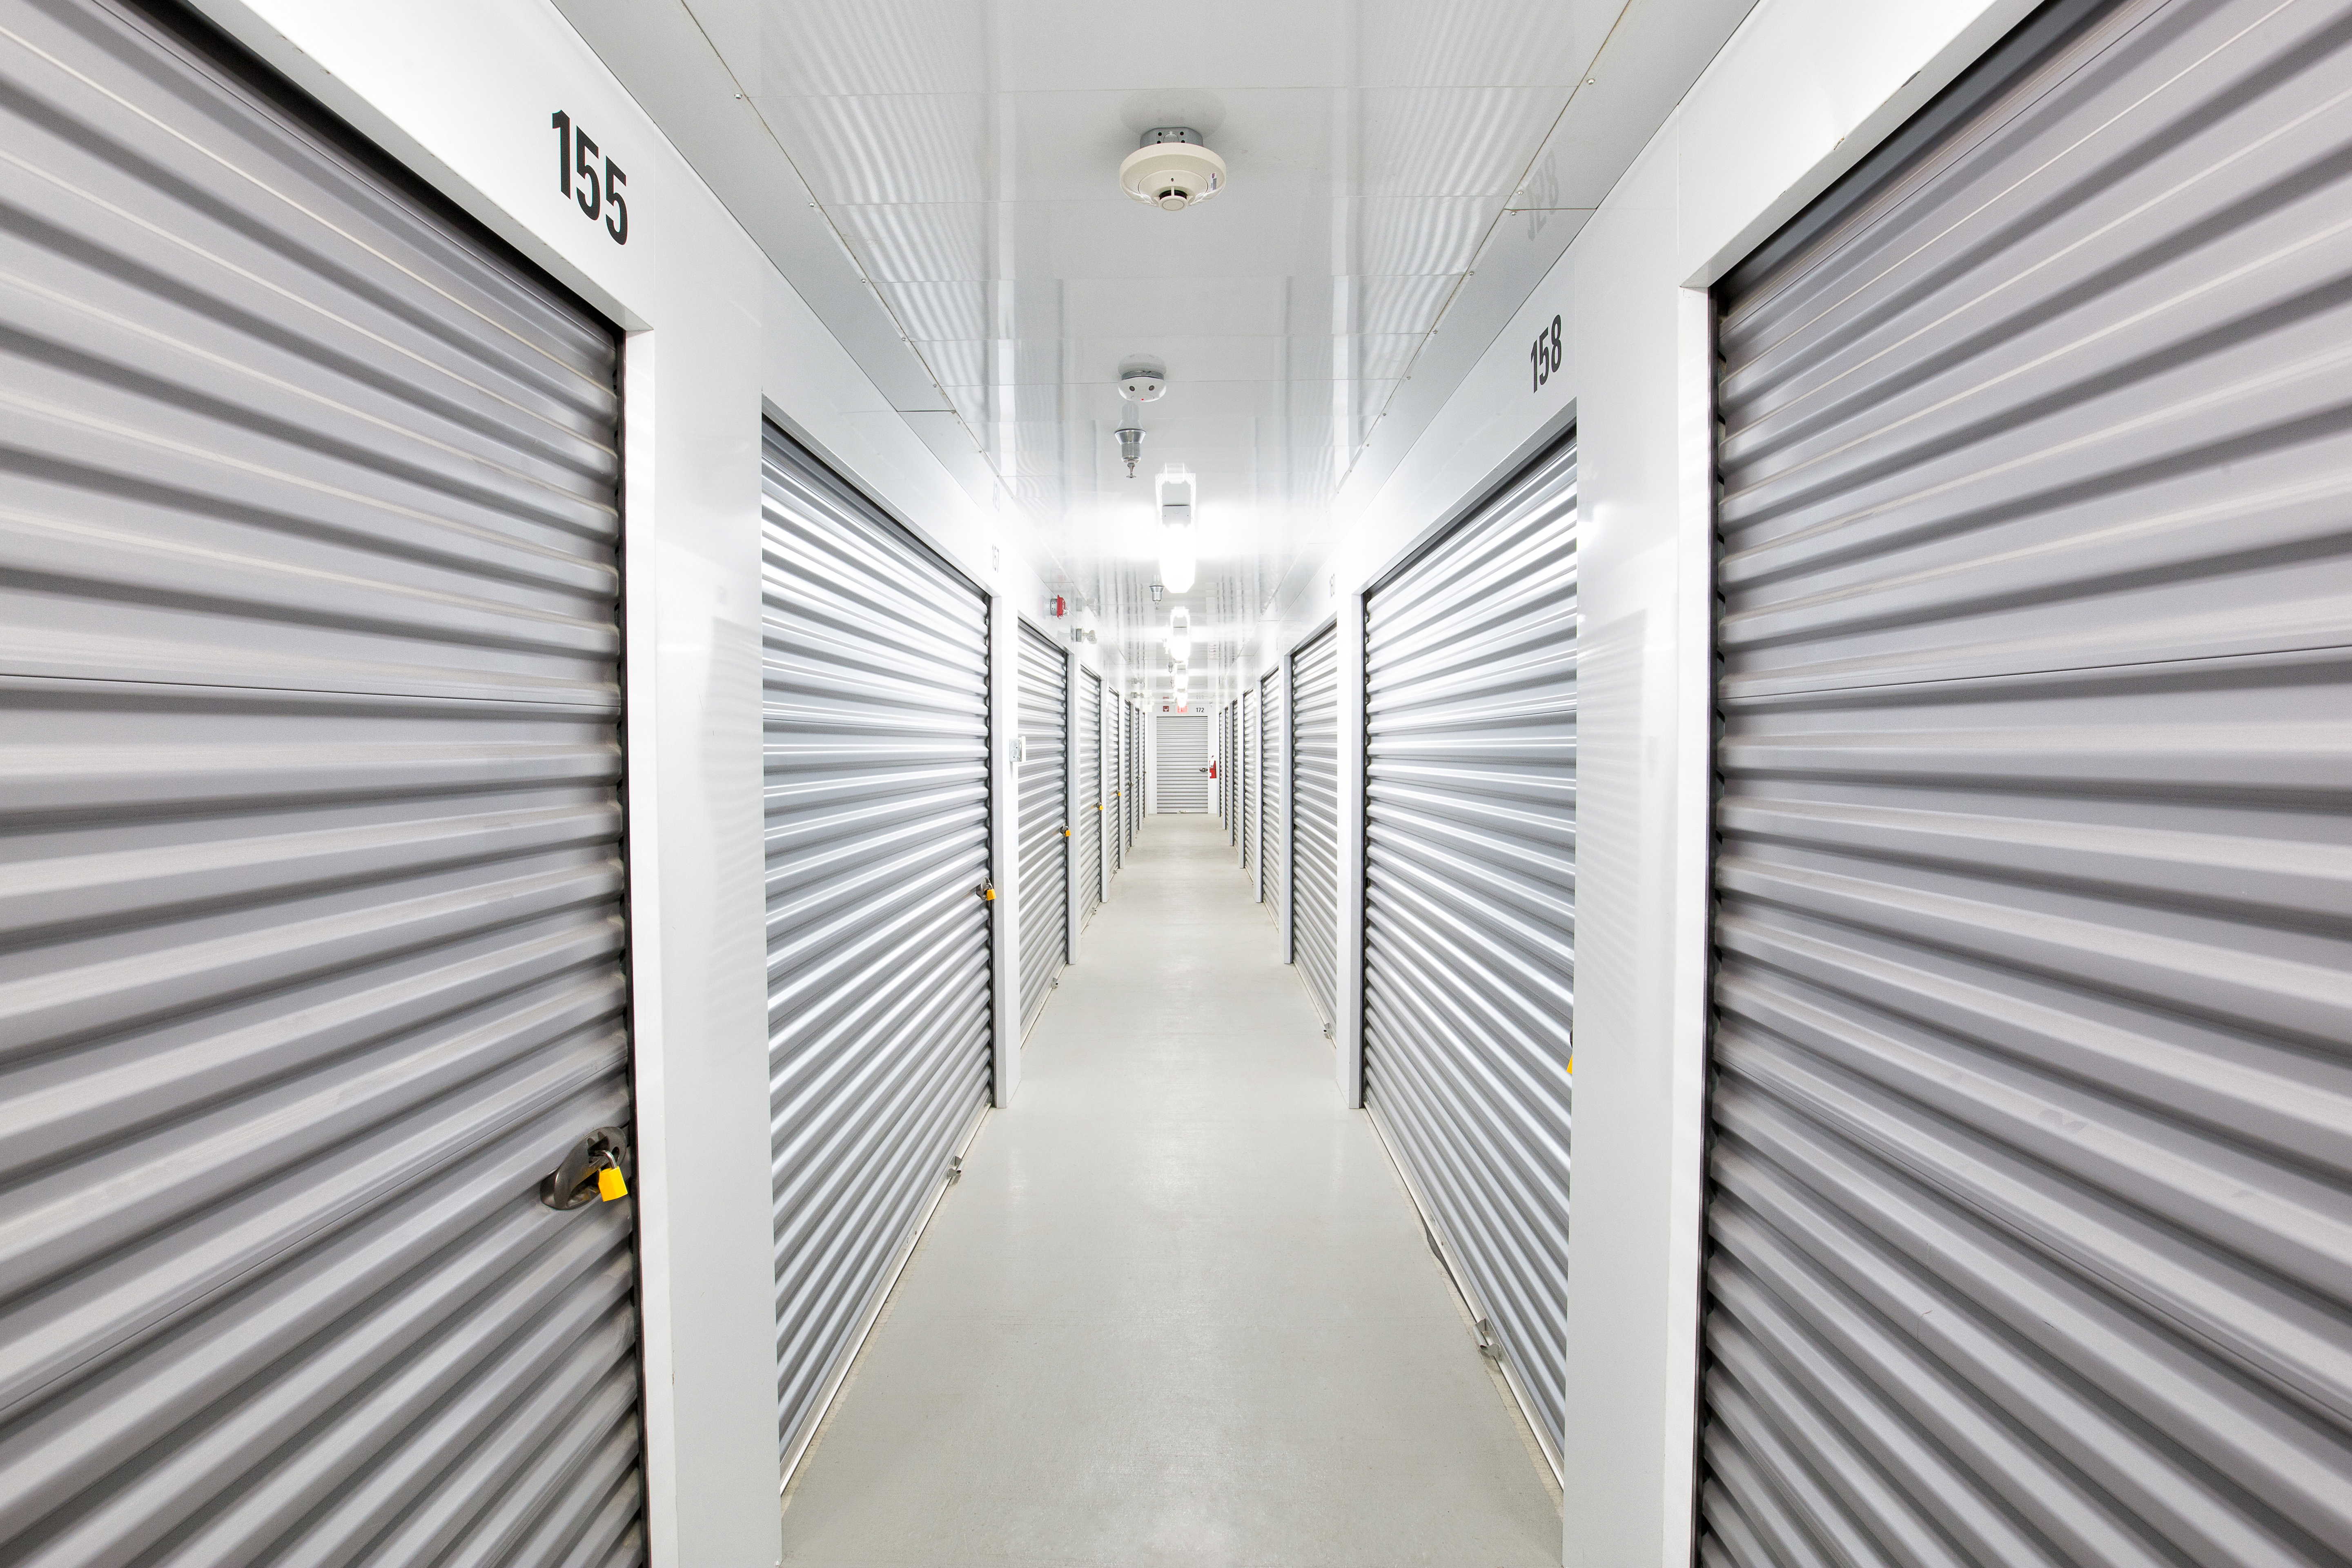 Interior of storage facility hallway